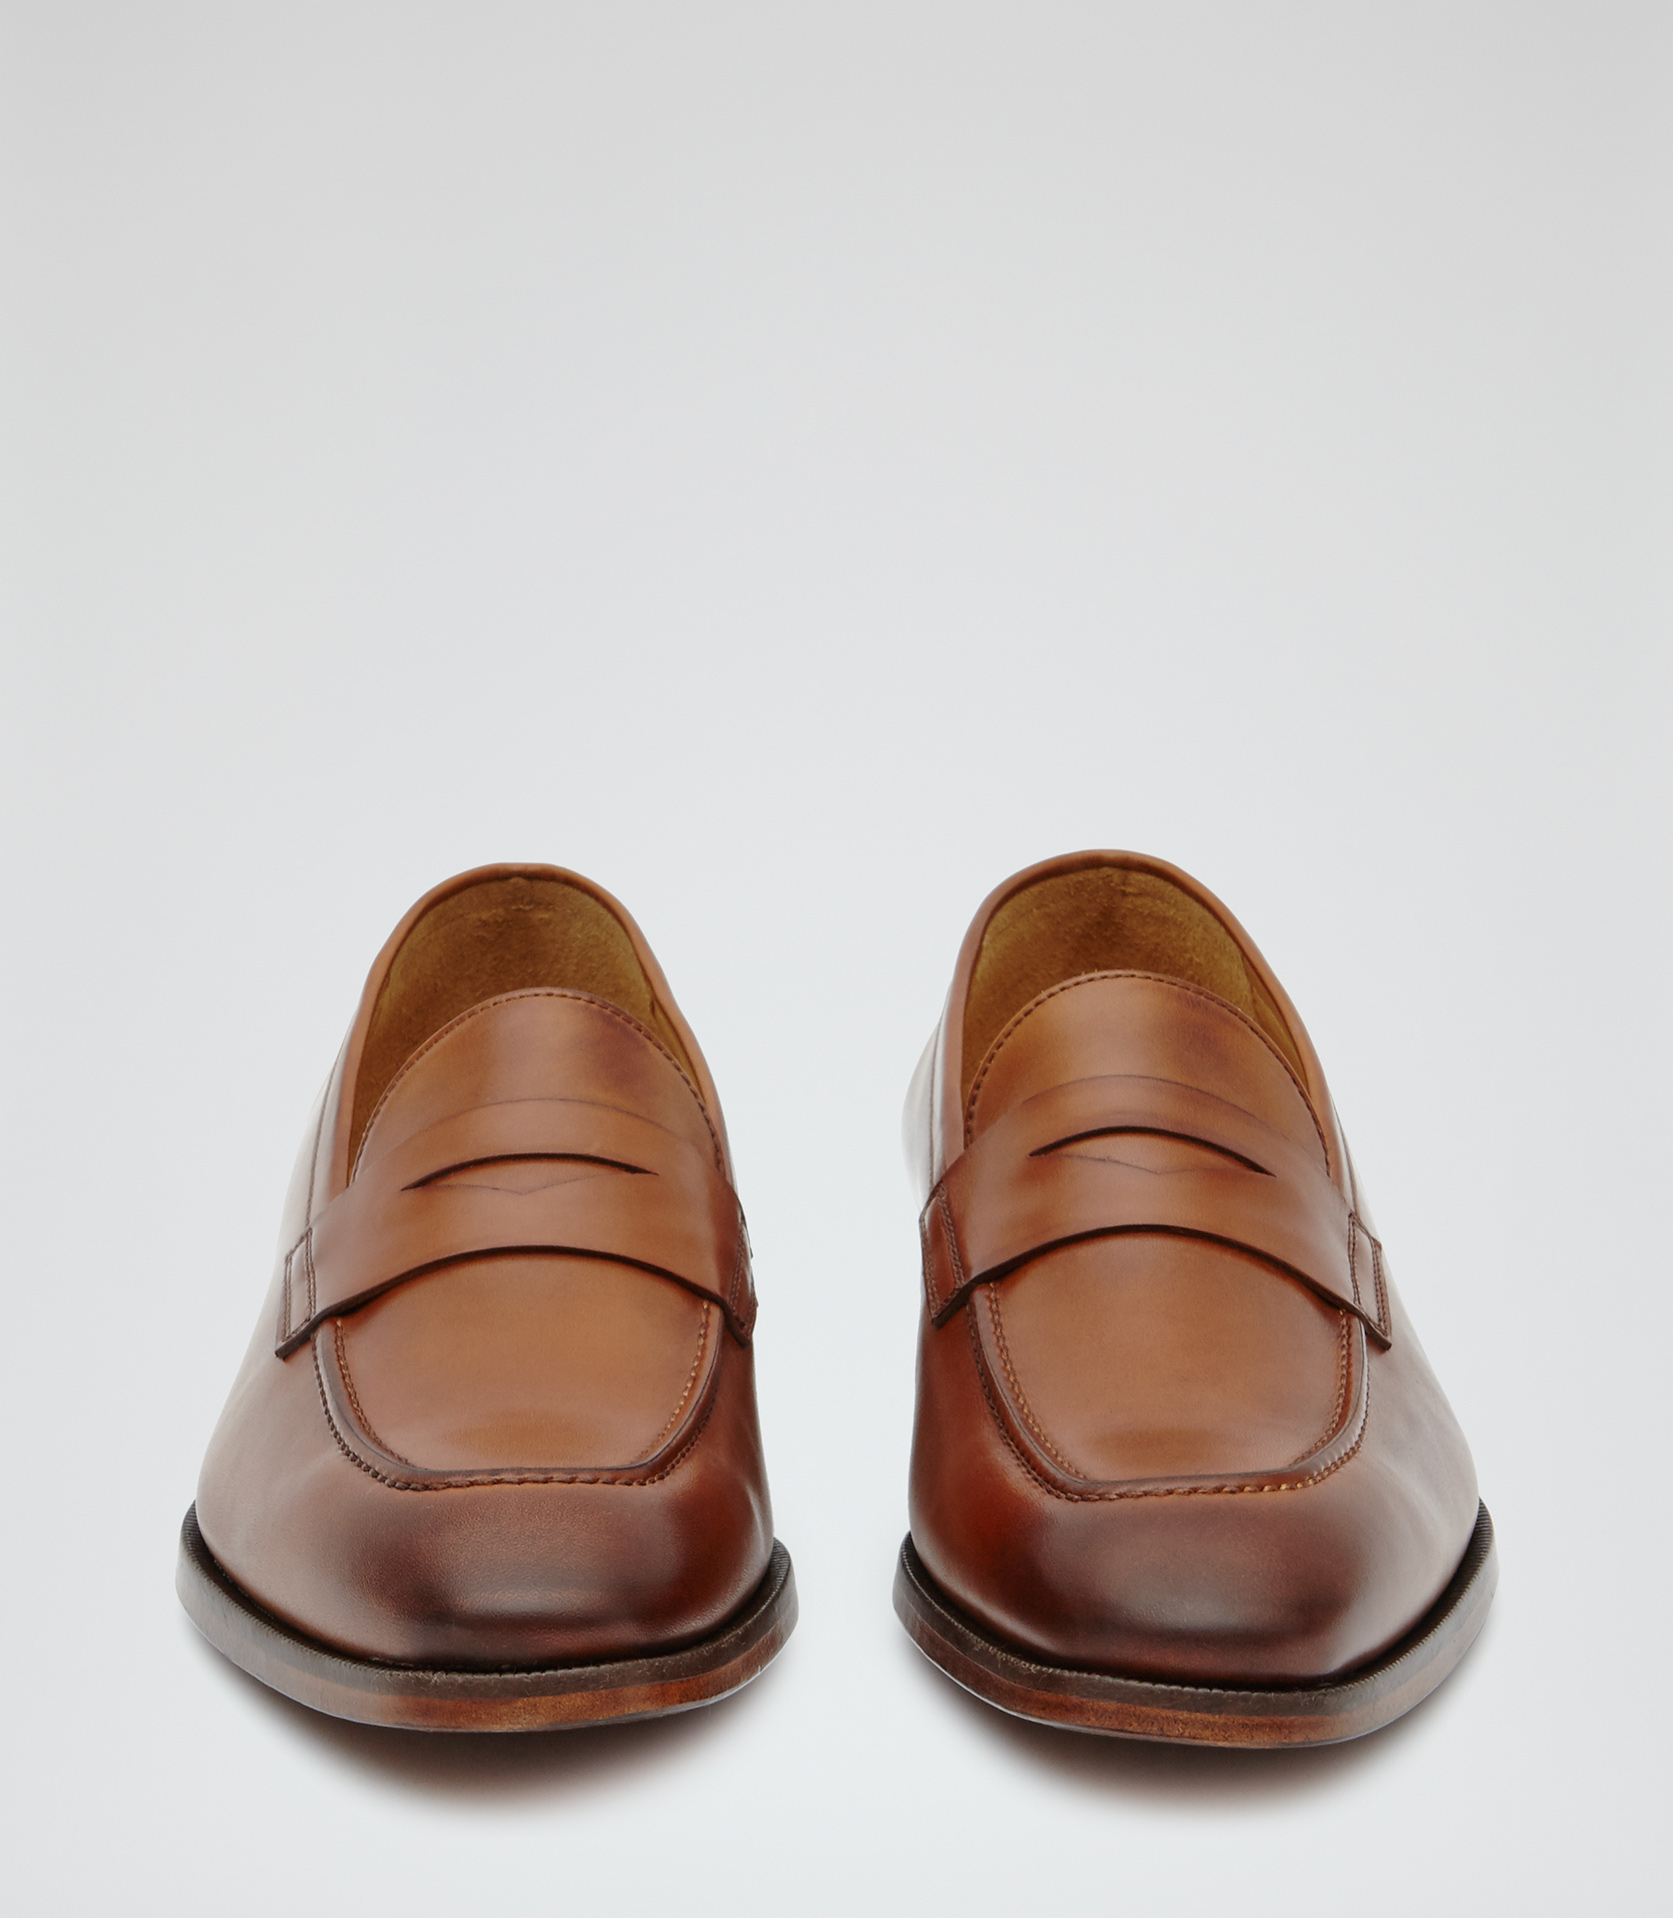 4f736e5964d Lyst - Reiss Cent Leather Penny Loafers in Brown for Men